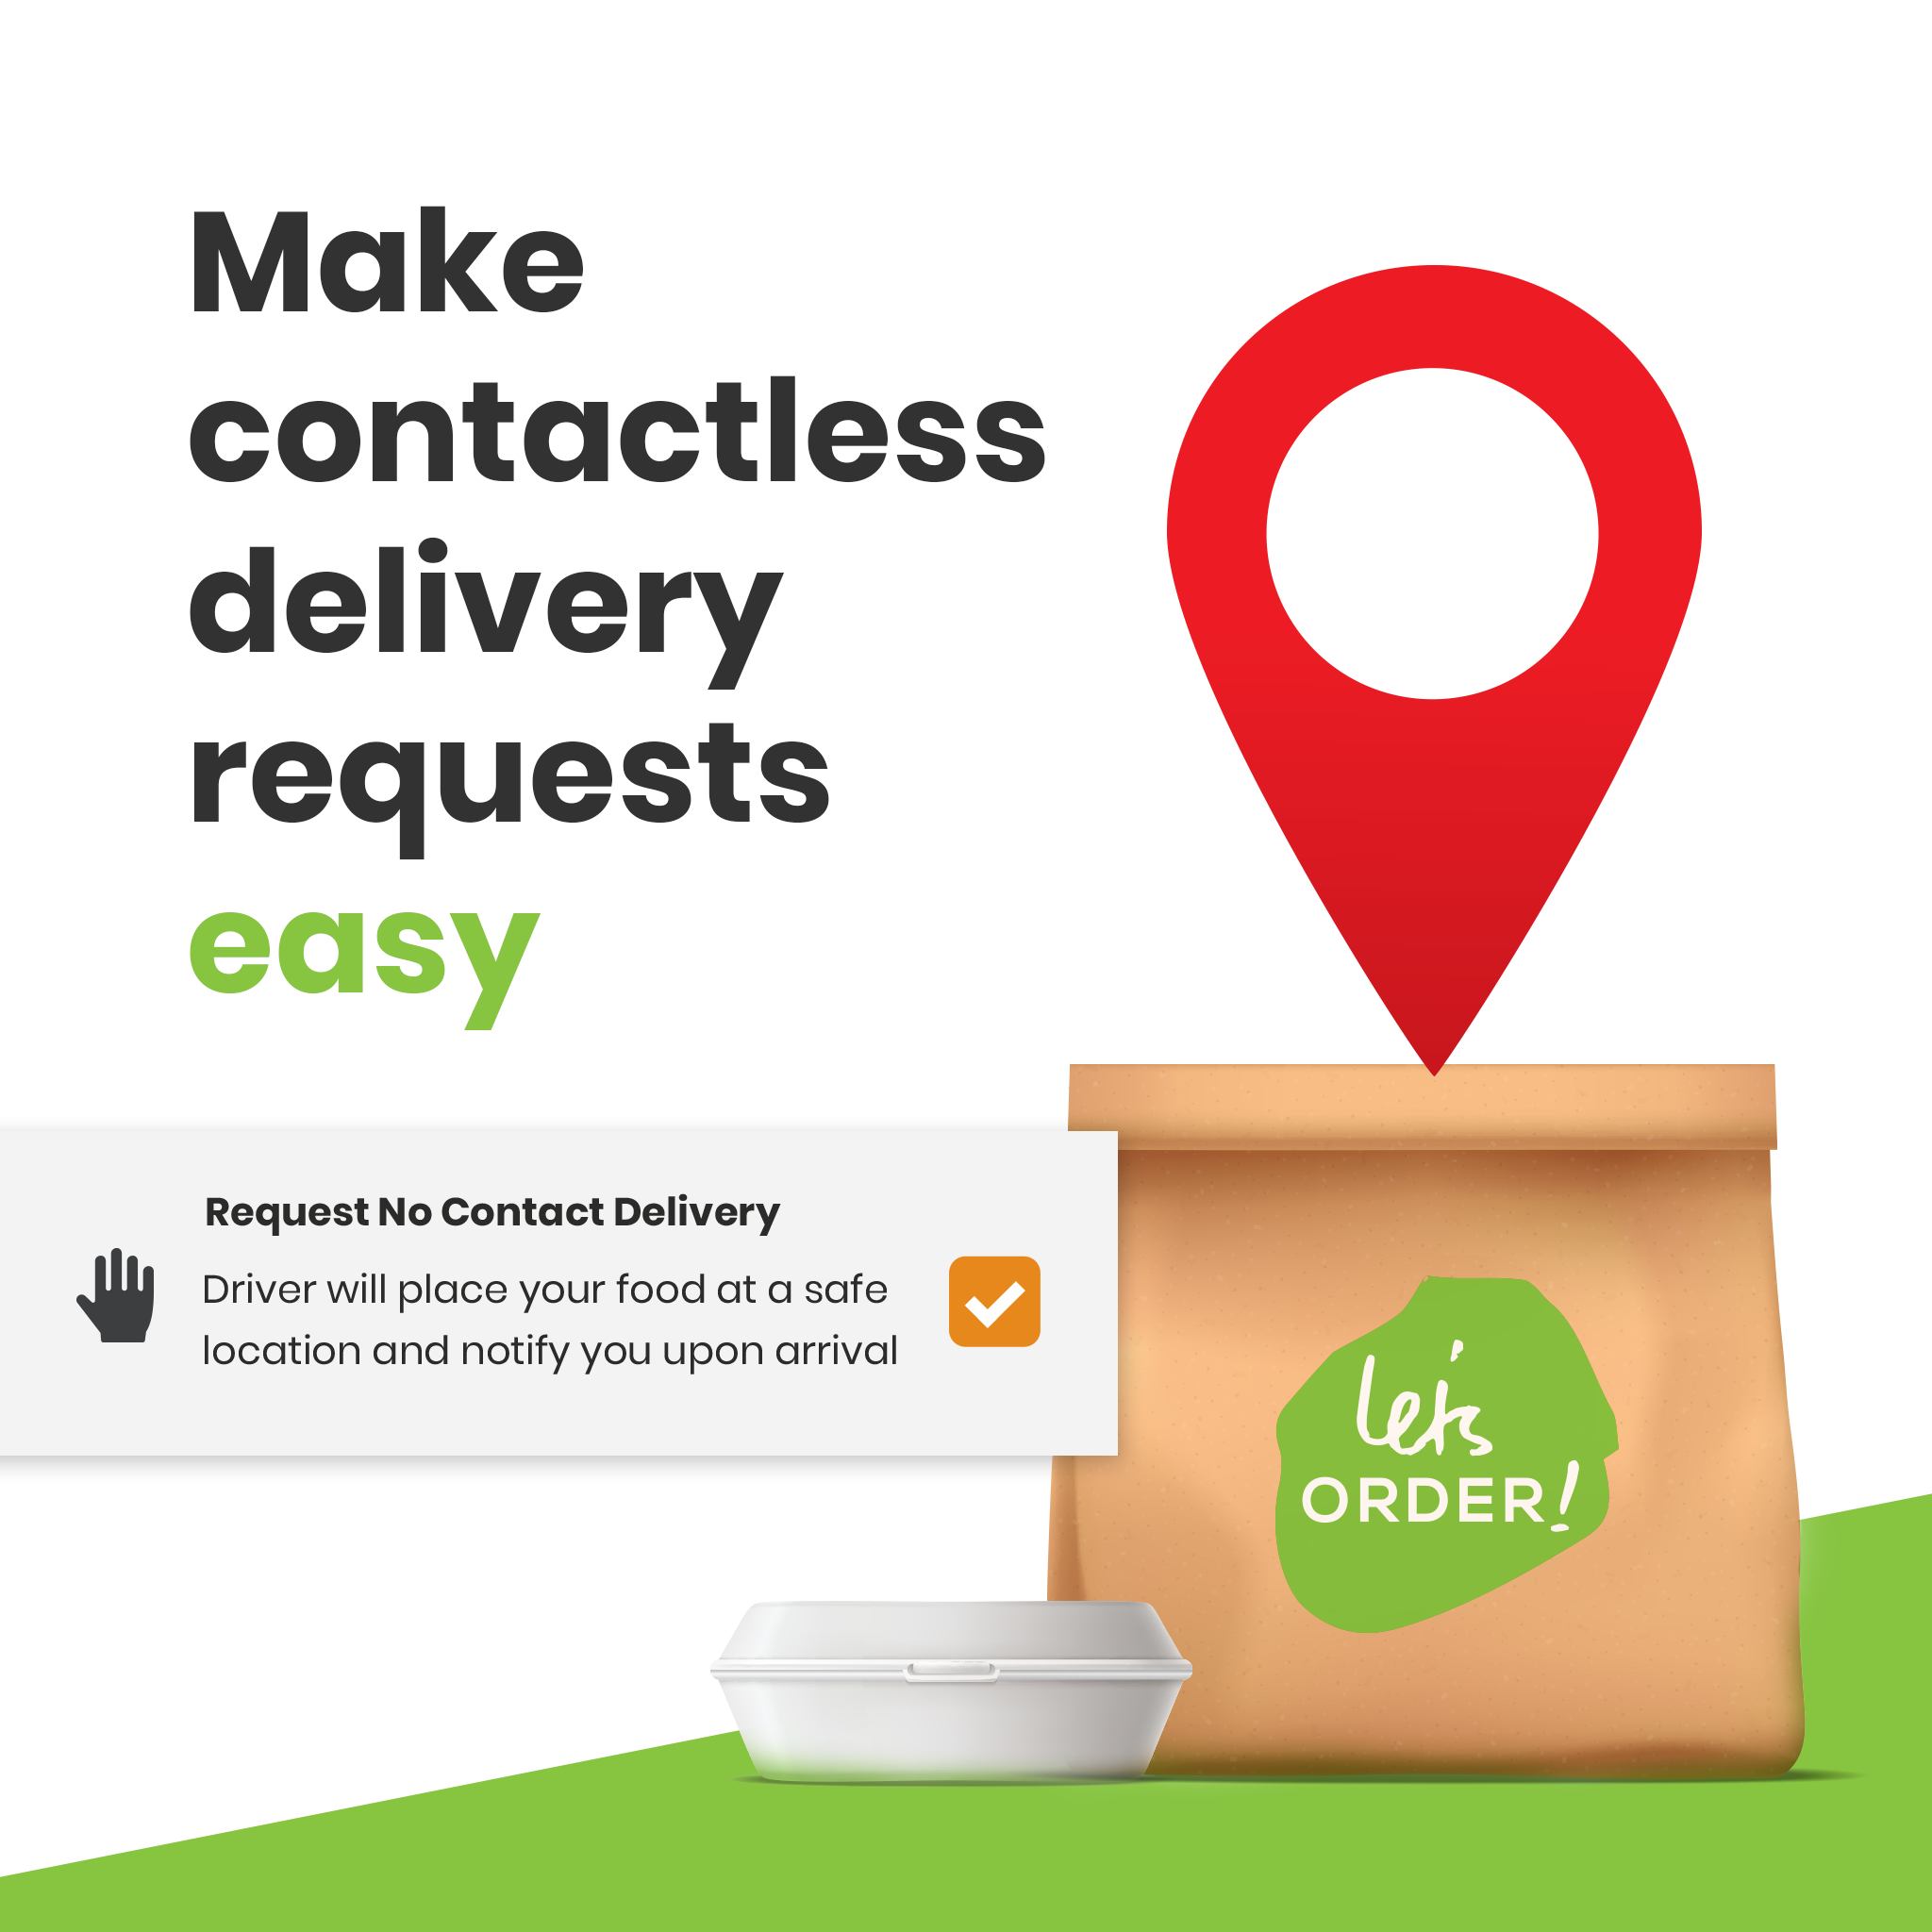 No Contact Delivery Requests